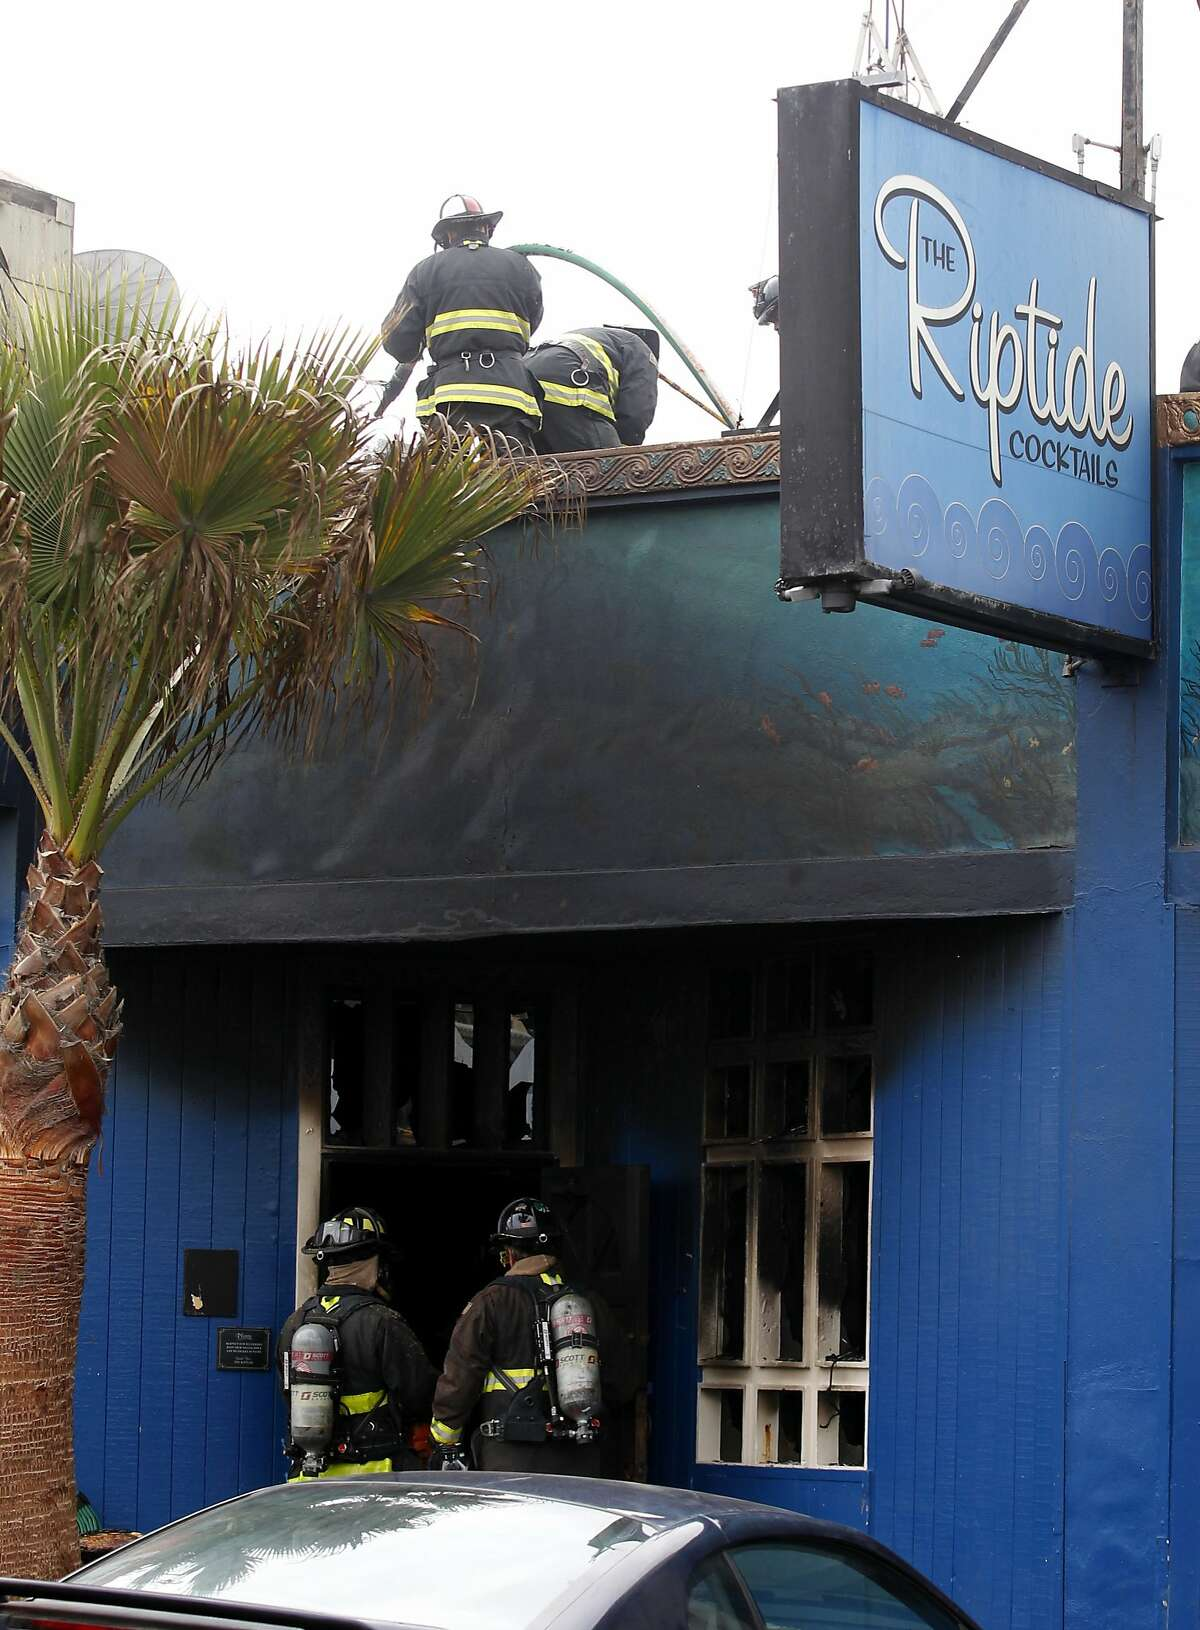 Firefighters battle smoke at the Riptide Bar on Taraval Street on Tuesday, August 18, 2015 in San Francisco, Calif.